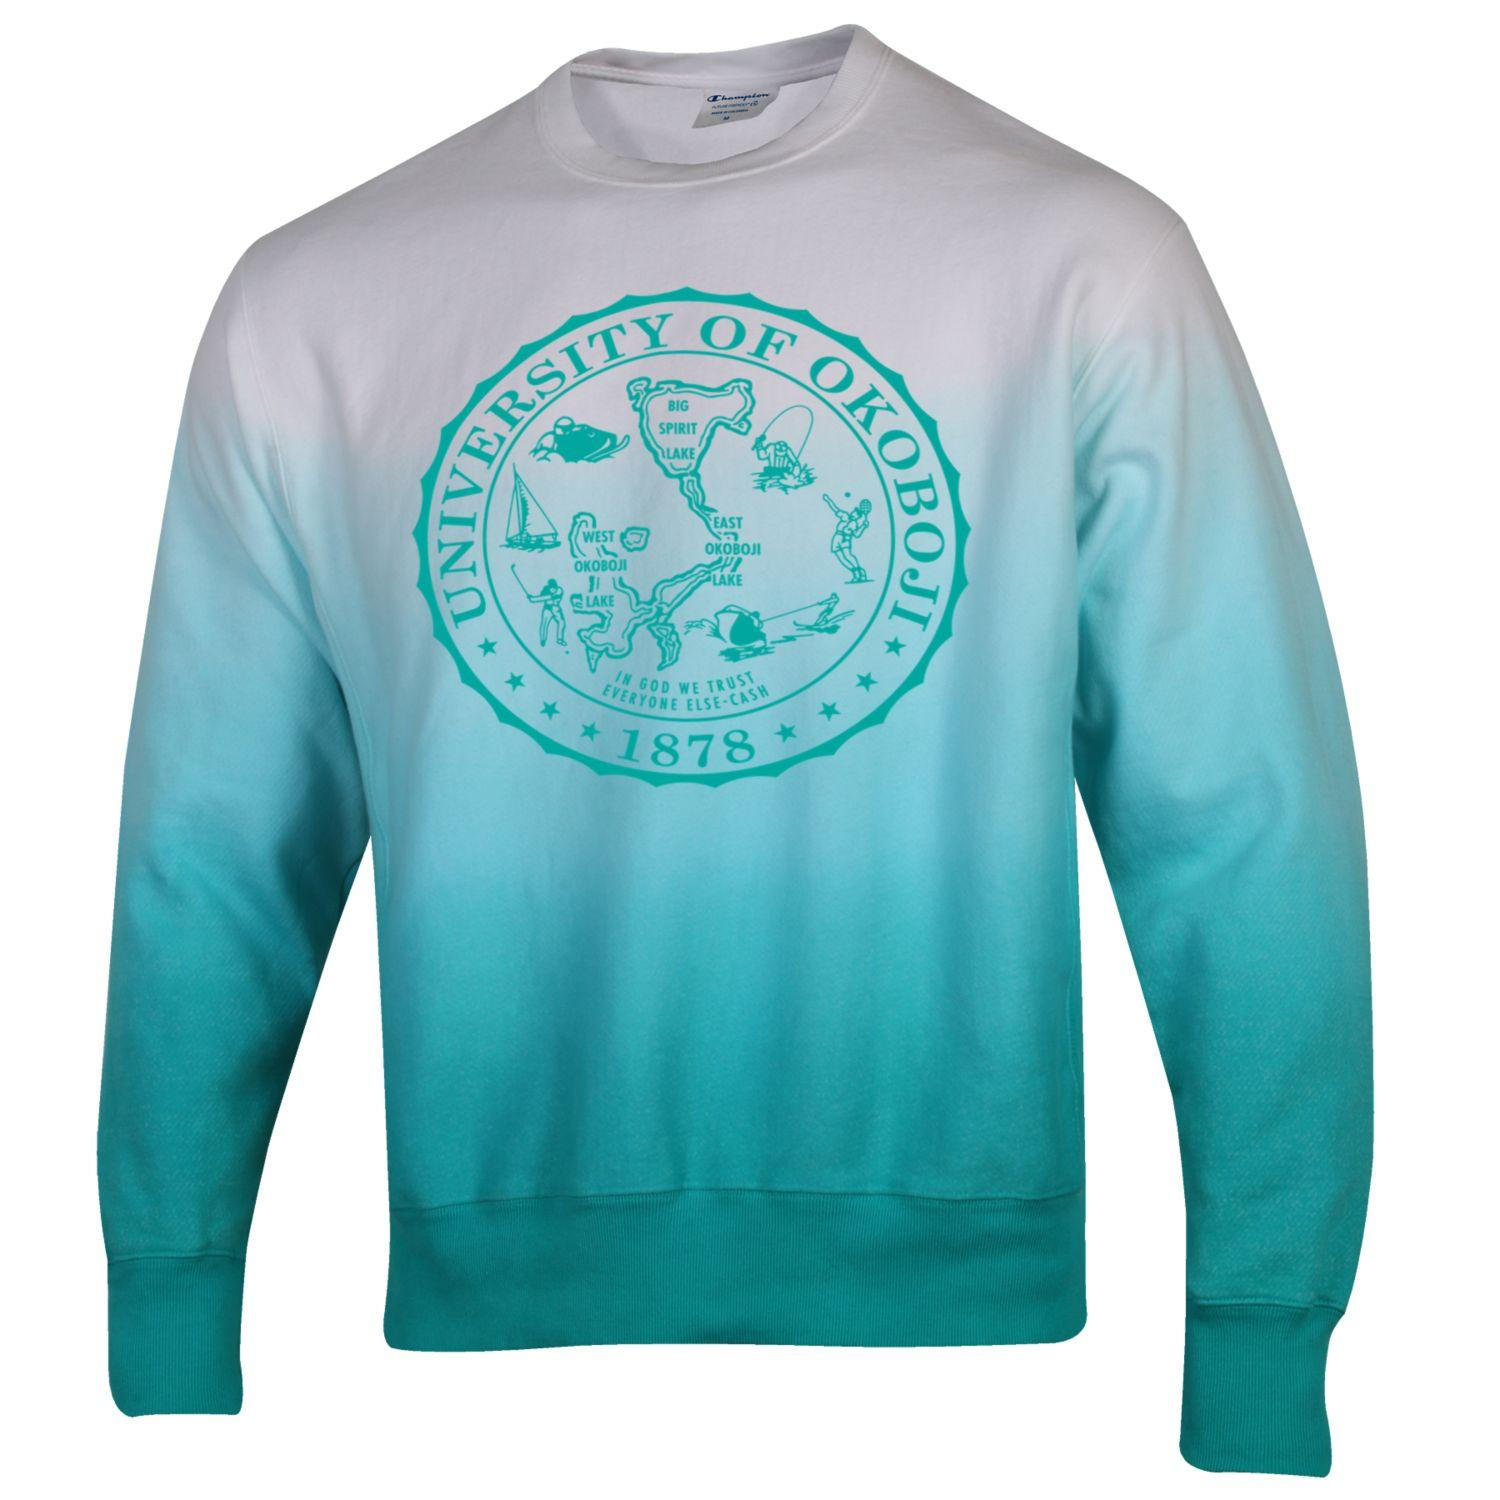 Limited Edition Champion Reverse Weave Dip Dye Ombre Crew - Vivid Teal